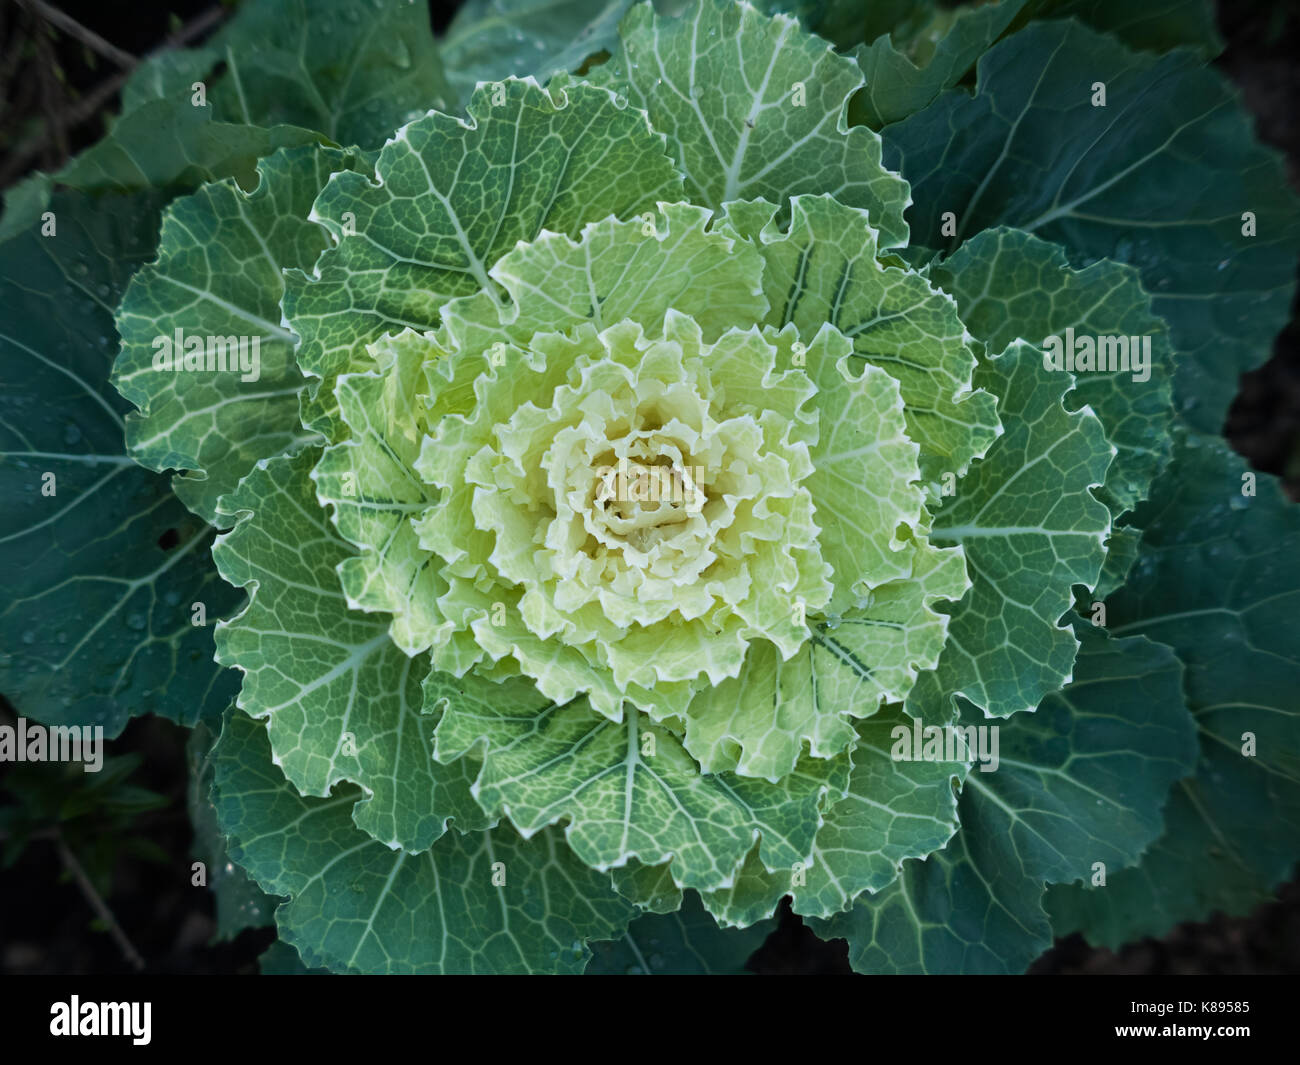 Stock image of a cabbage or headed cabbage leafy green biennial plant, grown as an annual vegetable crop. - Stock Image